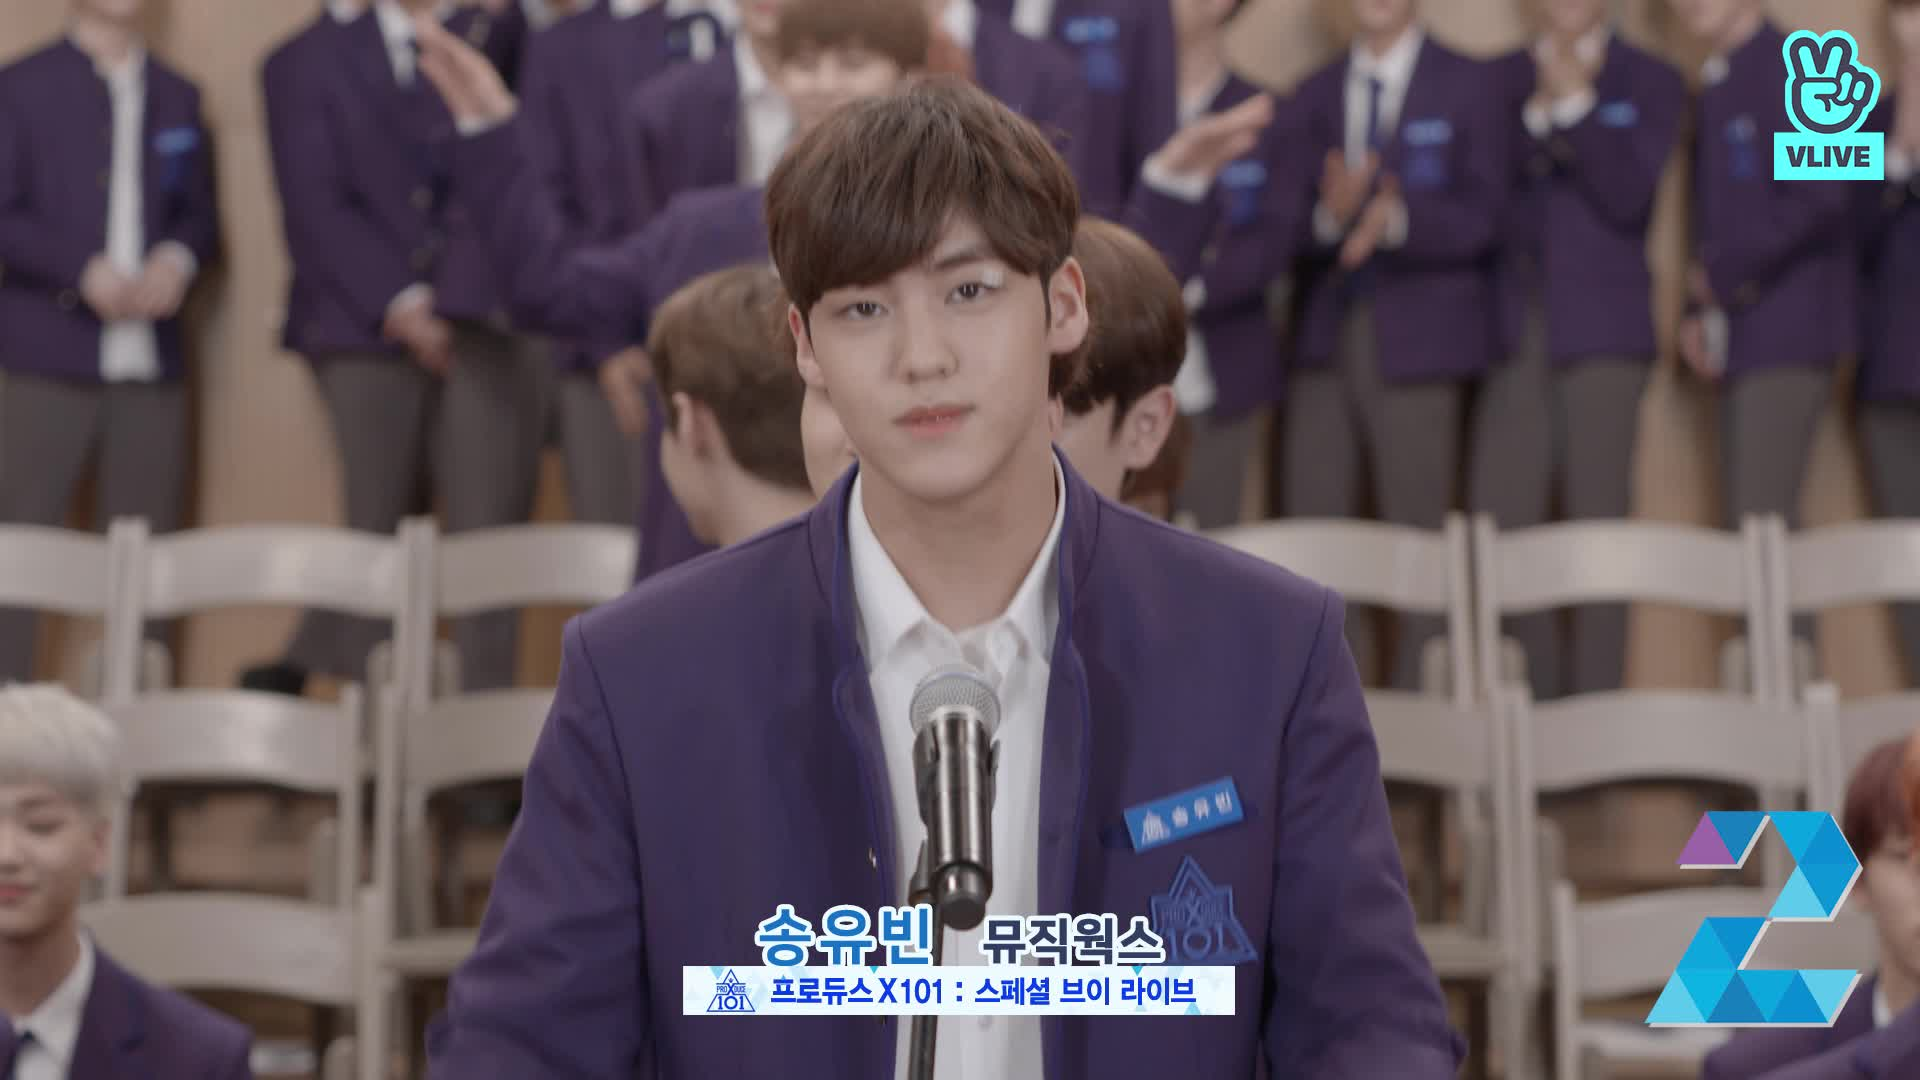 [PRODUCE X 101] 10sec. PR / SONG YU VIN